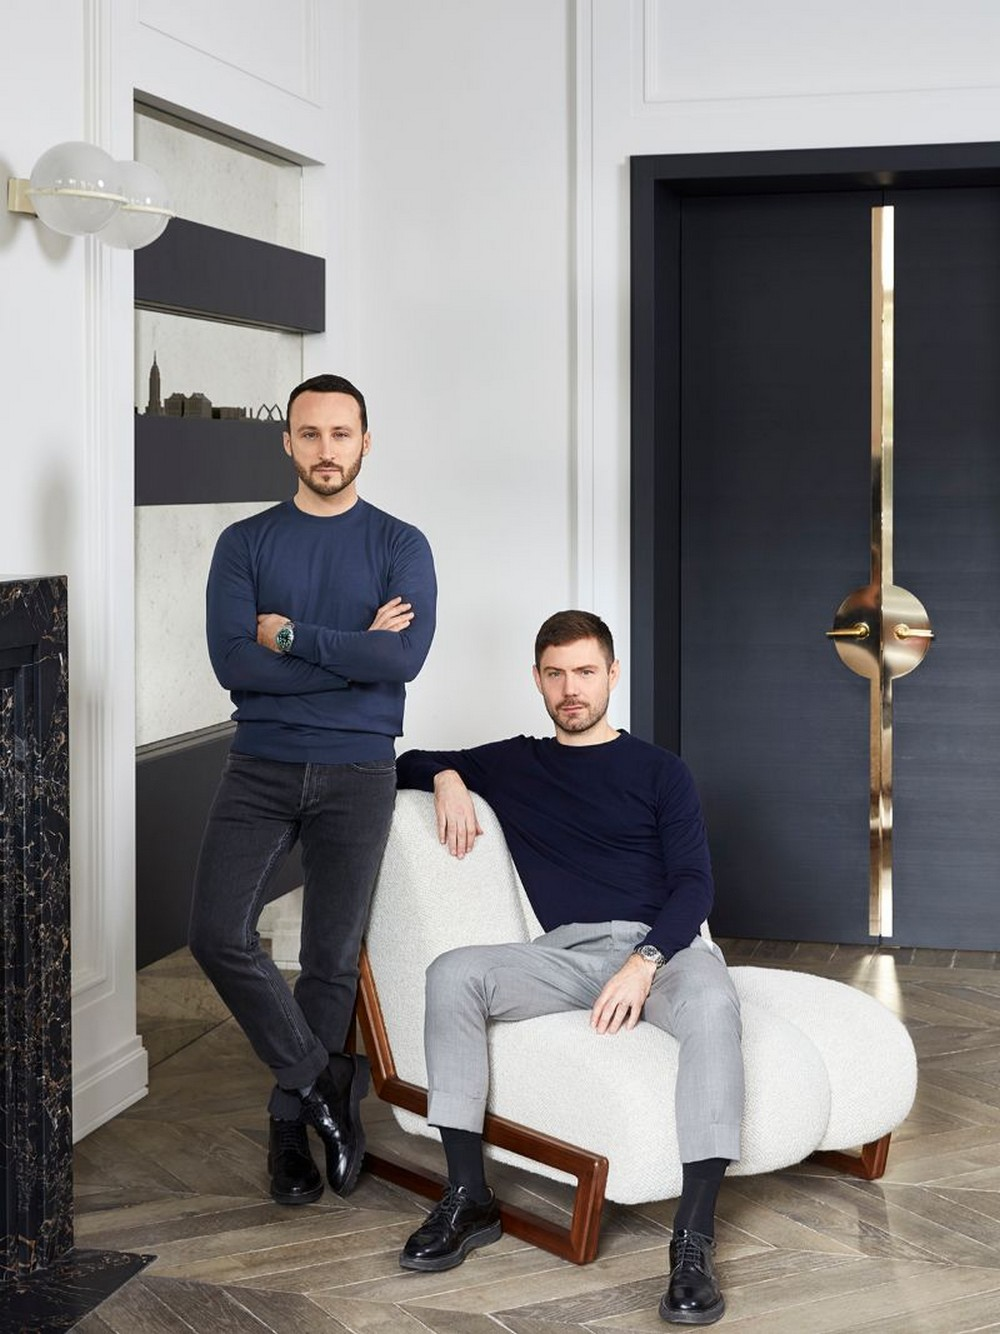 AD Intérieurs 2019 Presented The Best Eclectic Design Inspirations ad intérieurs AD Intérieurs 2019 Presented The Best Eclectic Design Inspirations AD Int  rieurs 2019 Presented The Best Eclectic Design Inspirations 7